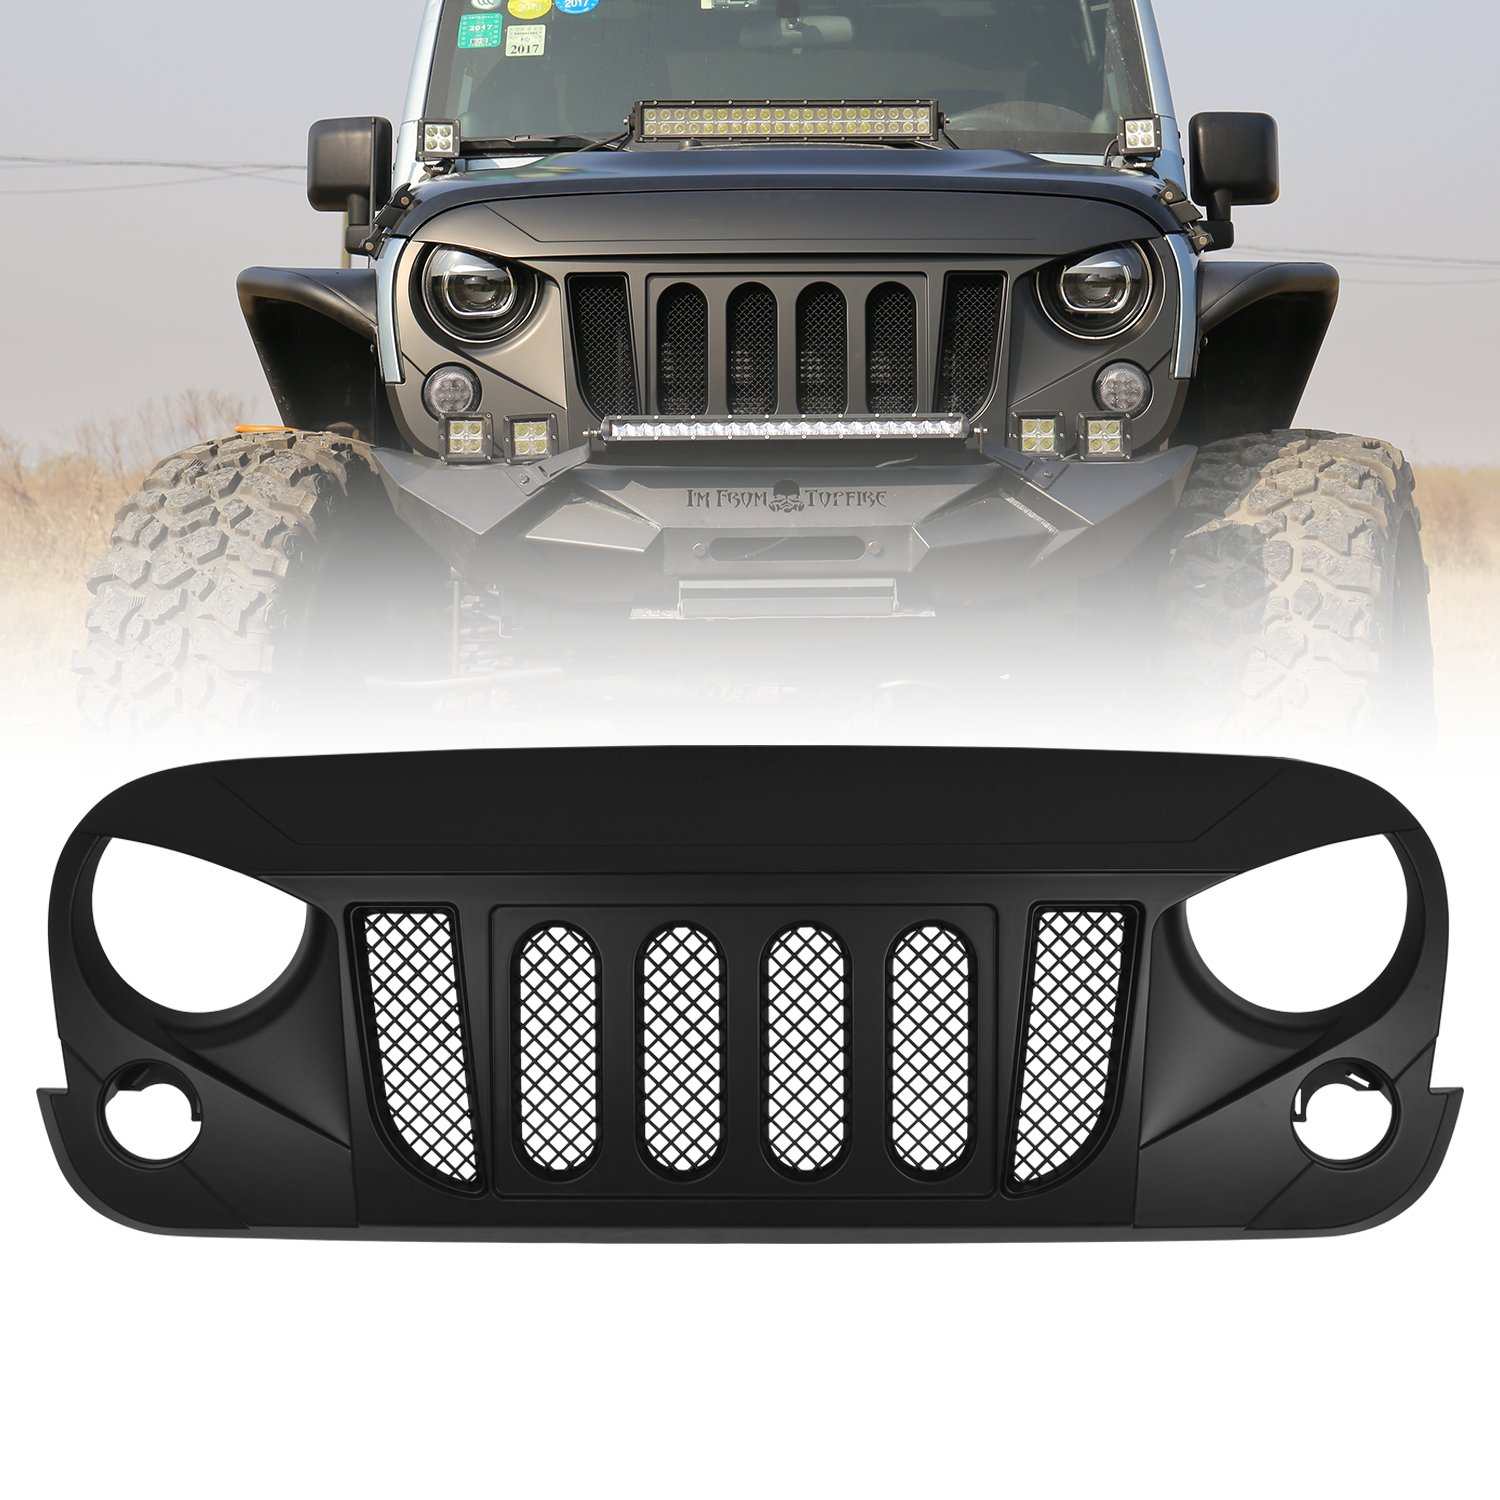 Replacement for Jeep JK Grill Covers Rubicon Sahara Sport JK /& Unlimited 2007-2018 Matte Black ORFORD Grille Guard for Jeep Wrangler